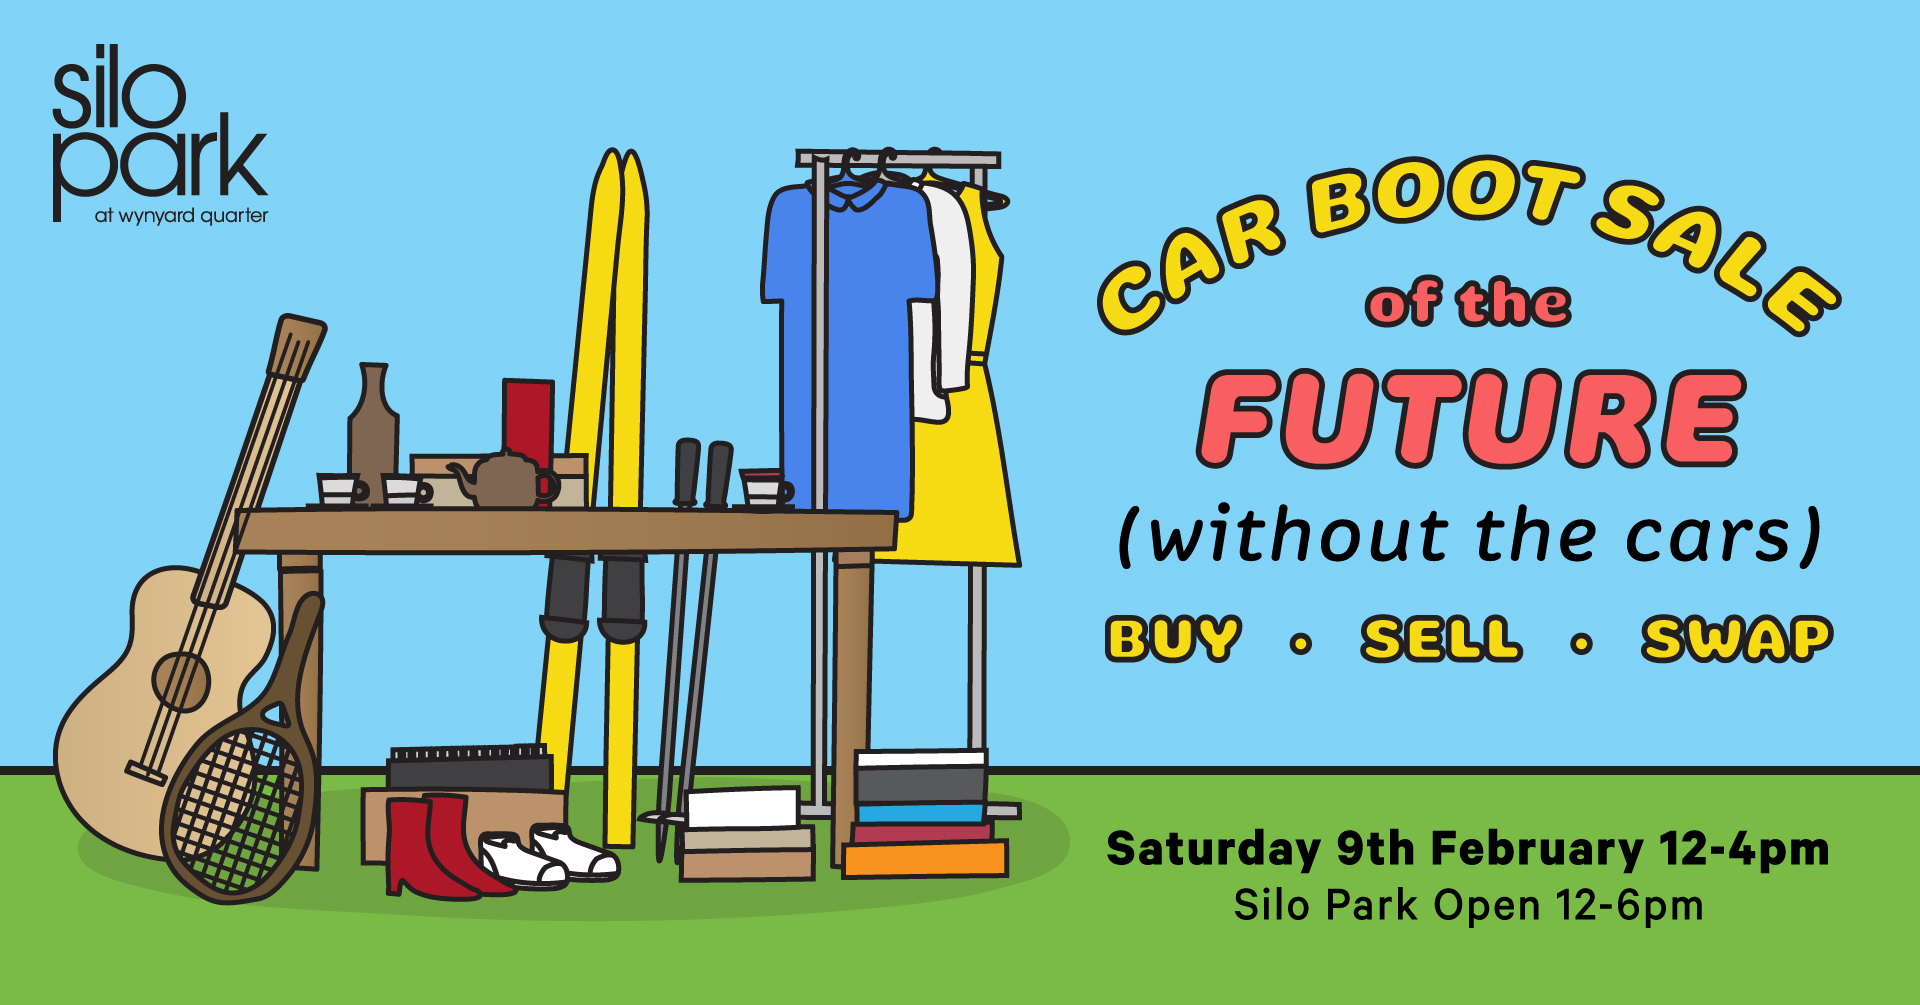 Silo Park Event_FB_5_Car Boot Sale.jpg